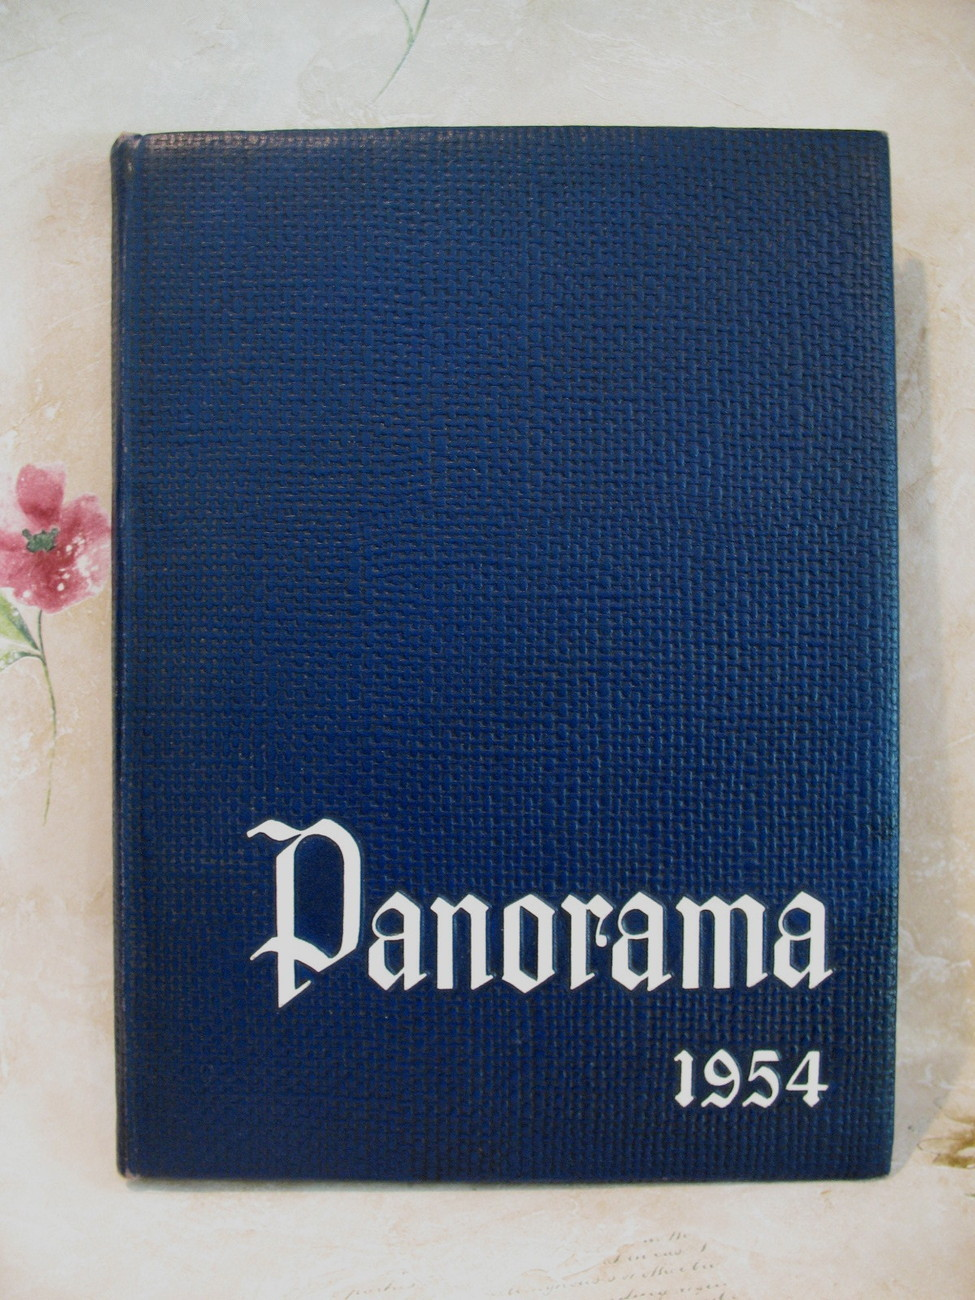 Suffern High School Yearbook Panorama 1954 New York